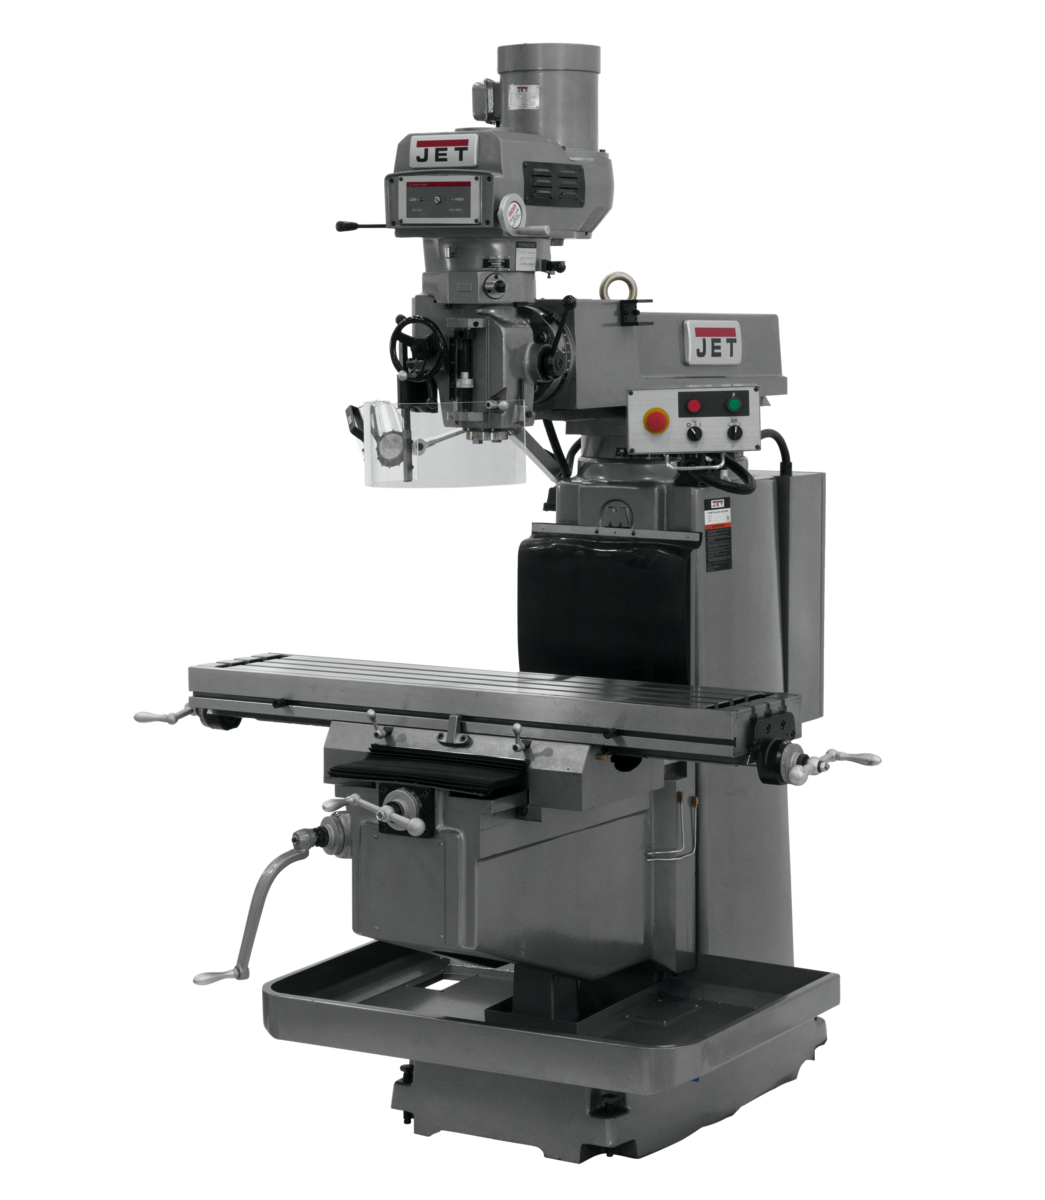 JTM-1254VS with 2-Axis ACU-RITE G-2 MILLPOWER CNC